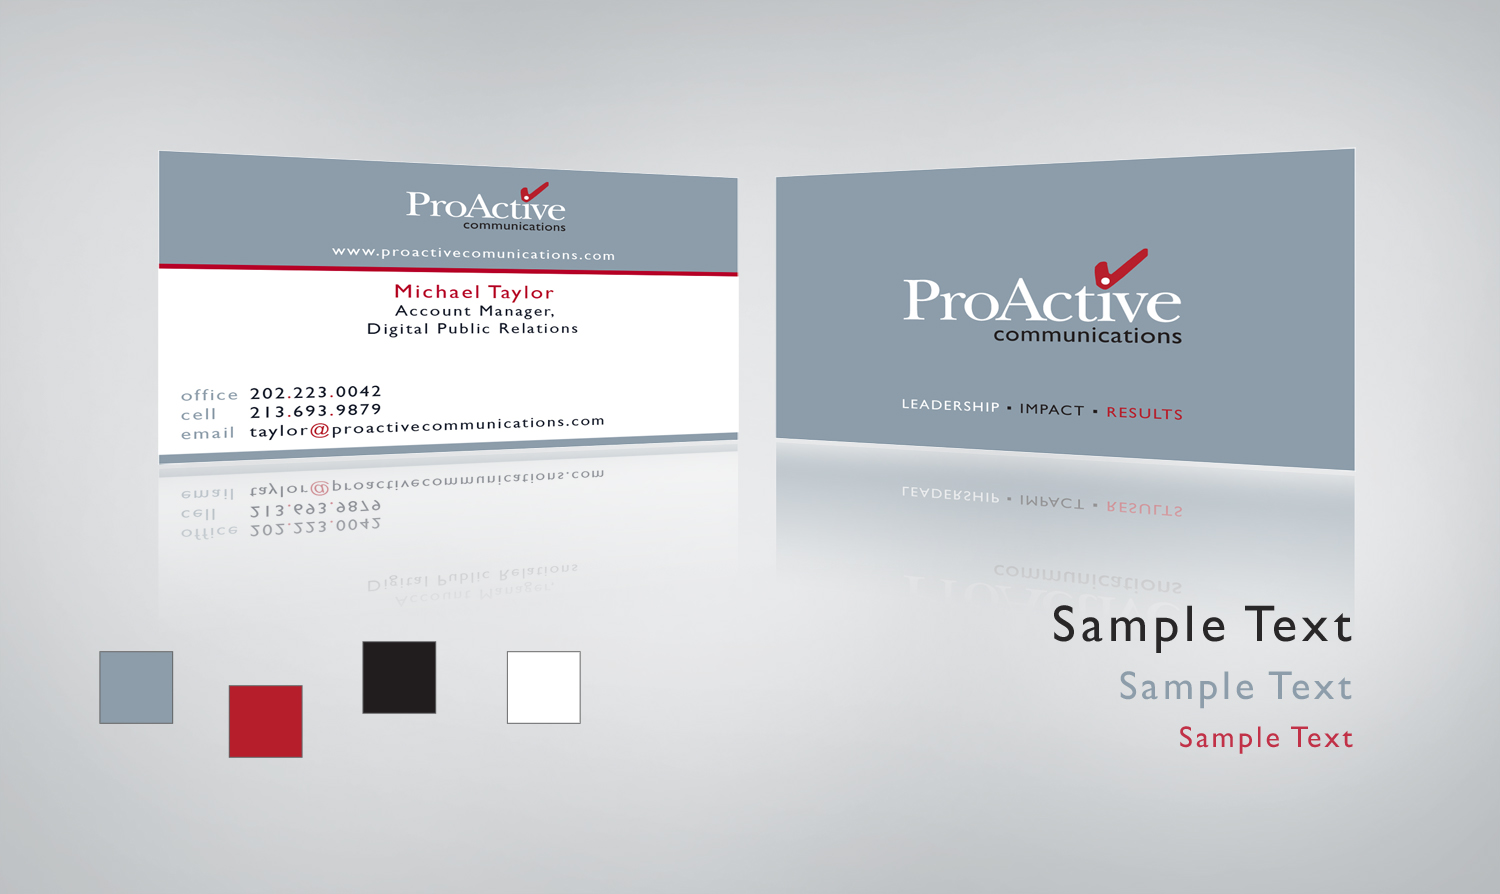 Communications Firm Business Card Design and Color Palette